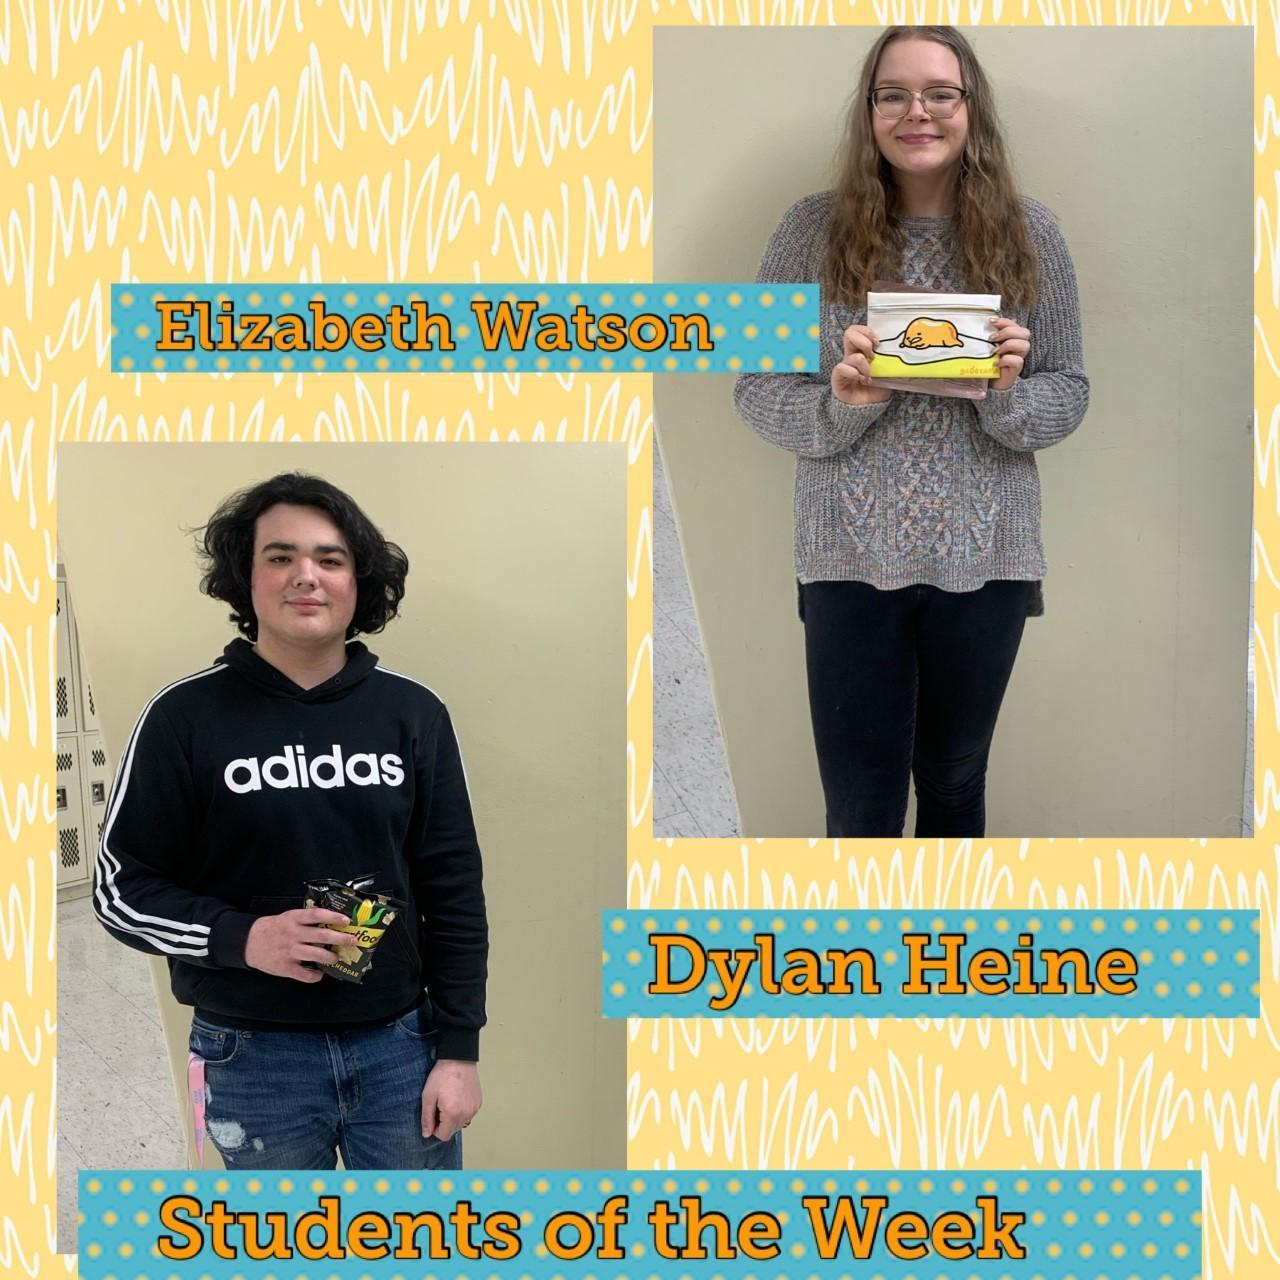 Congratulations to our students of the week! Each week we highlight two students who are actively contributing to our Cub culture in a positive way. They are nominated by their teachers and peers.